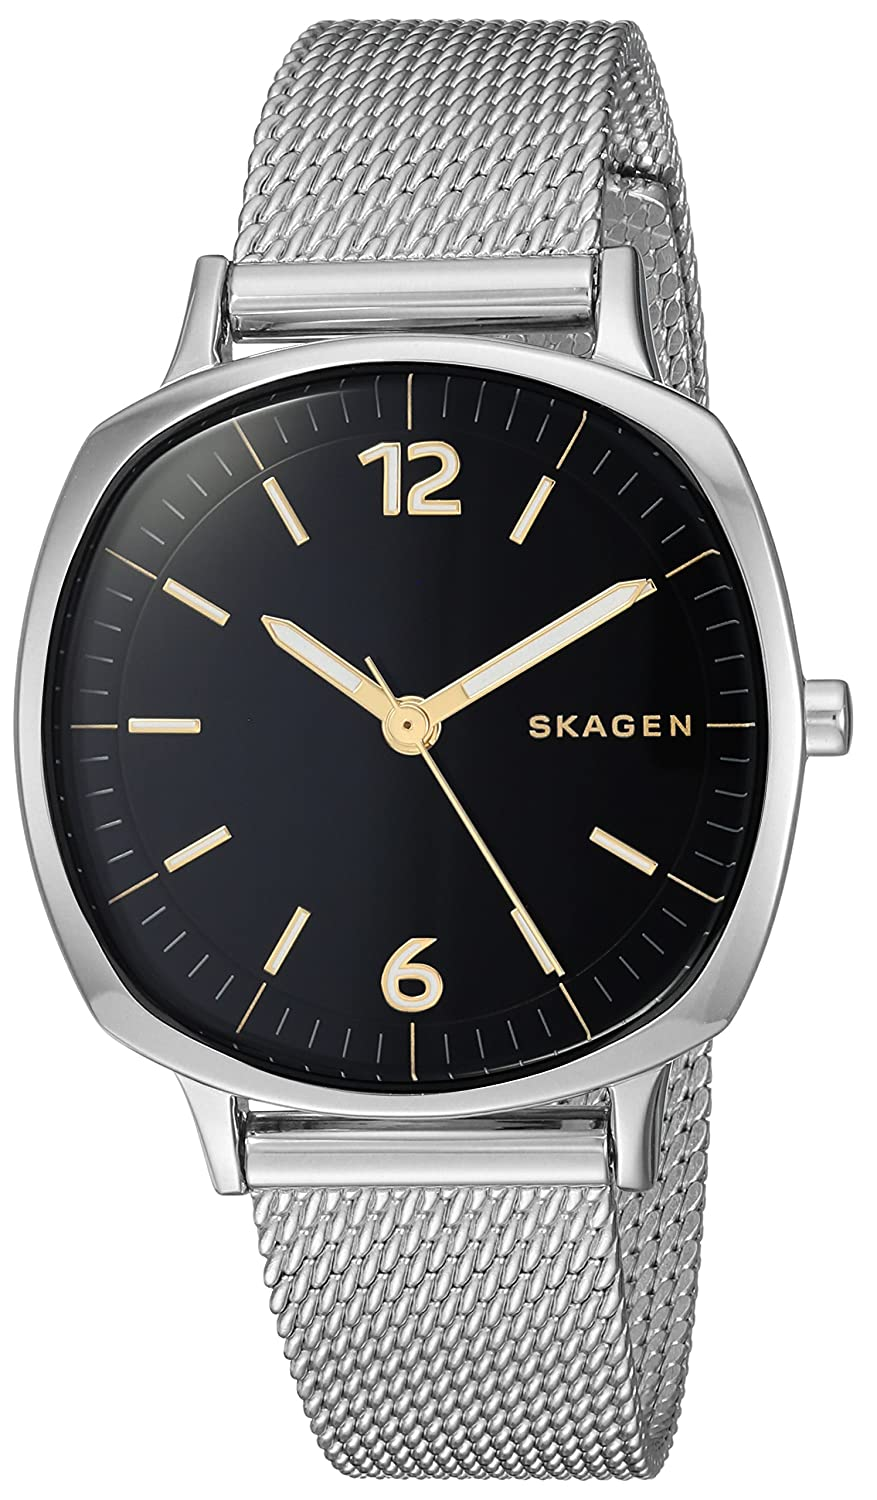 Skagen Women s Rungsted Quartz Watch with Stainless-Steel Strap, Silver, 14 Model SKW2628